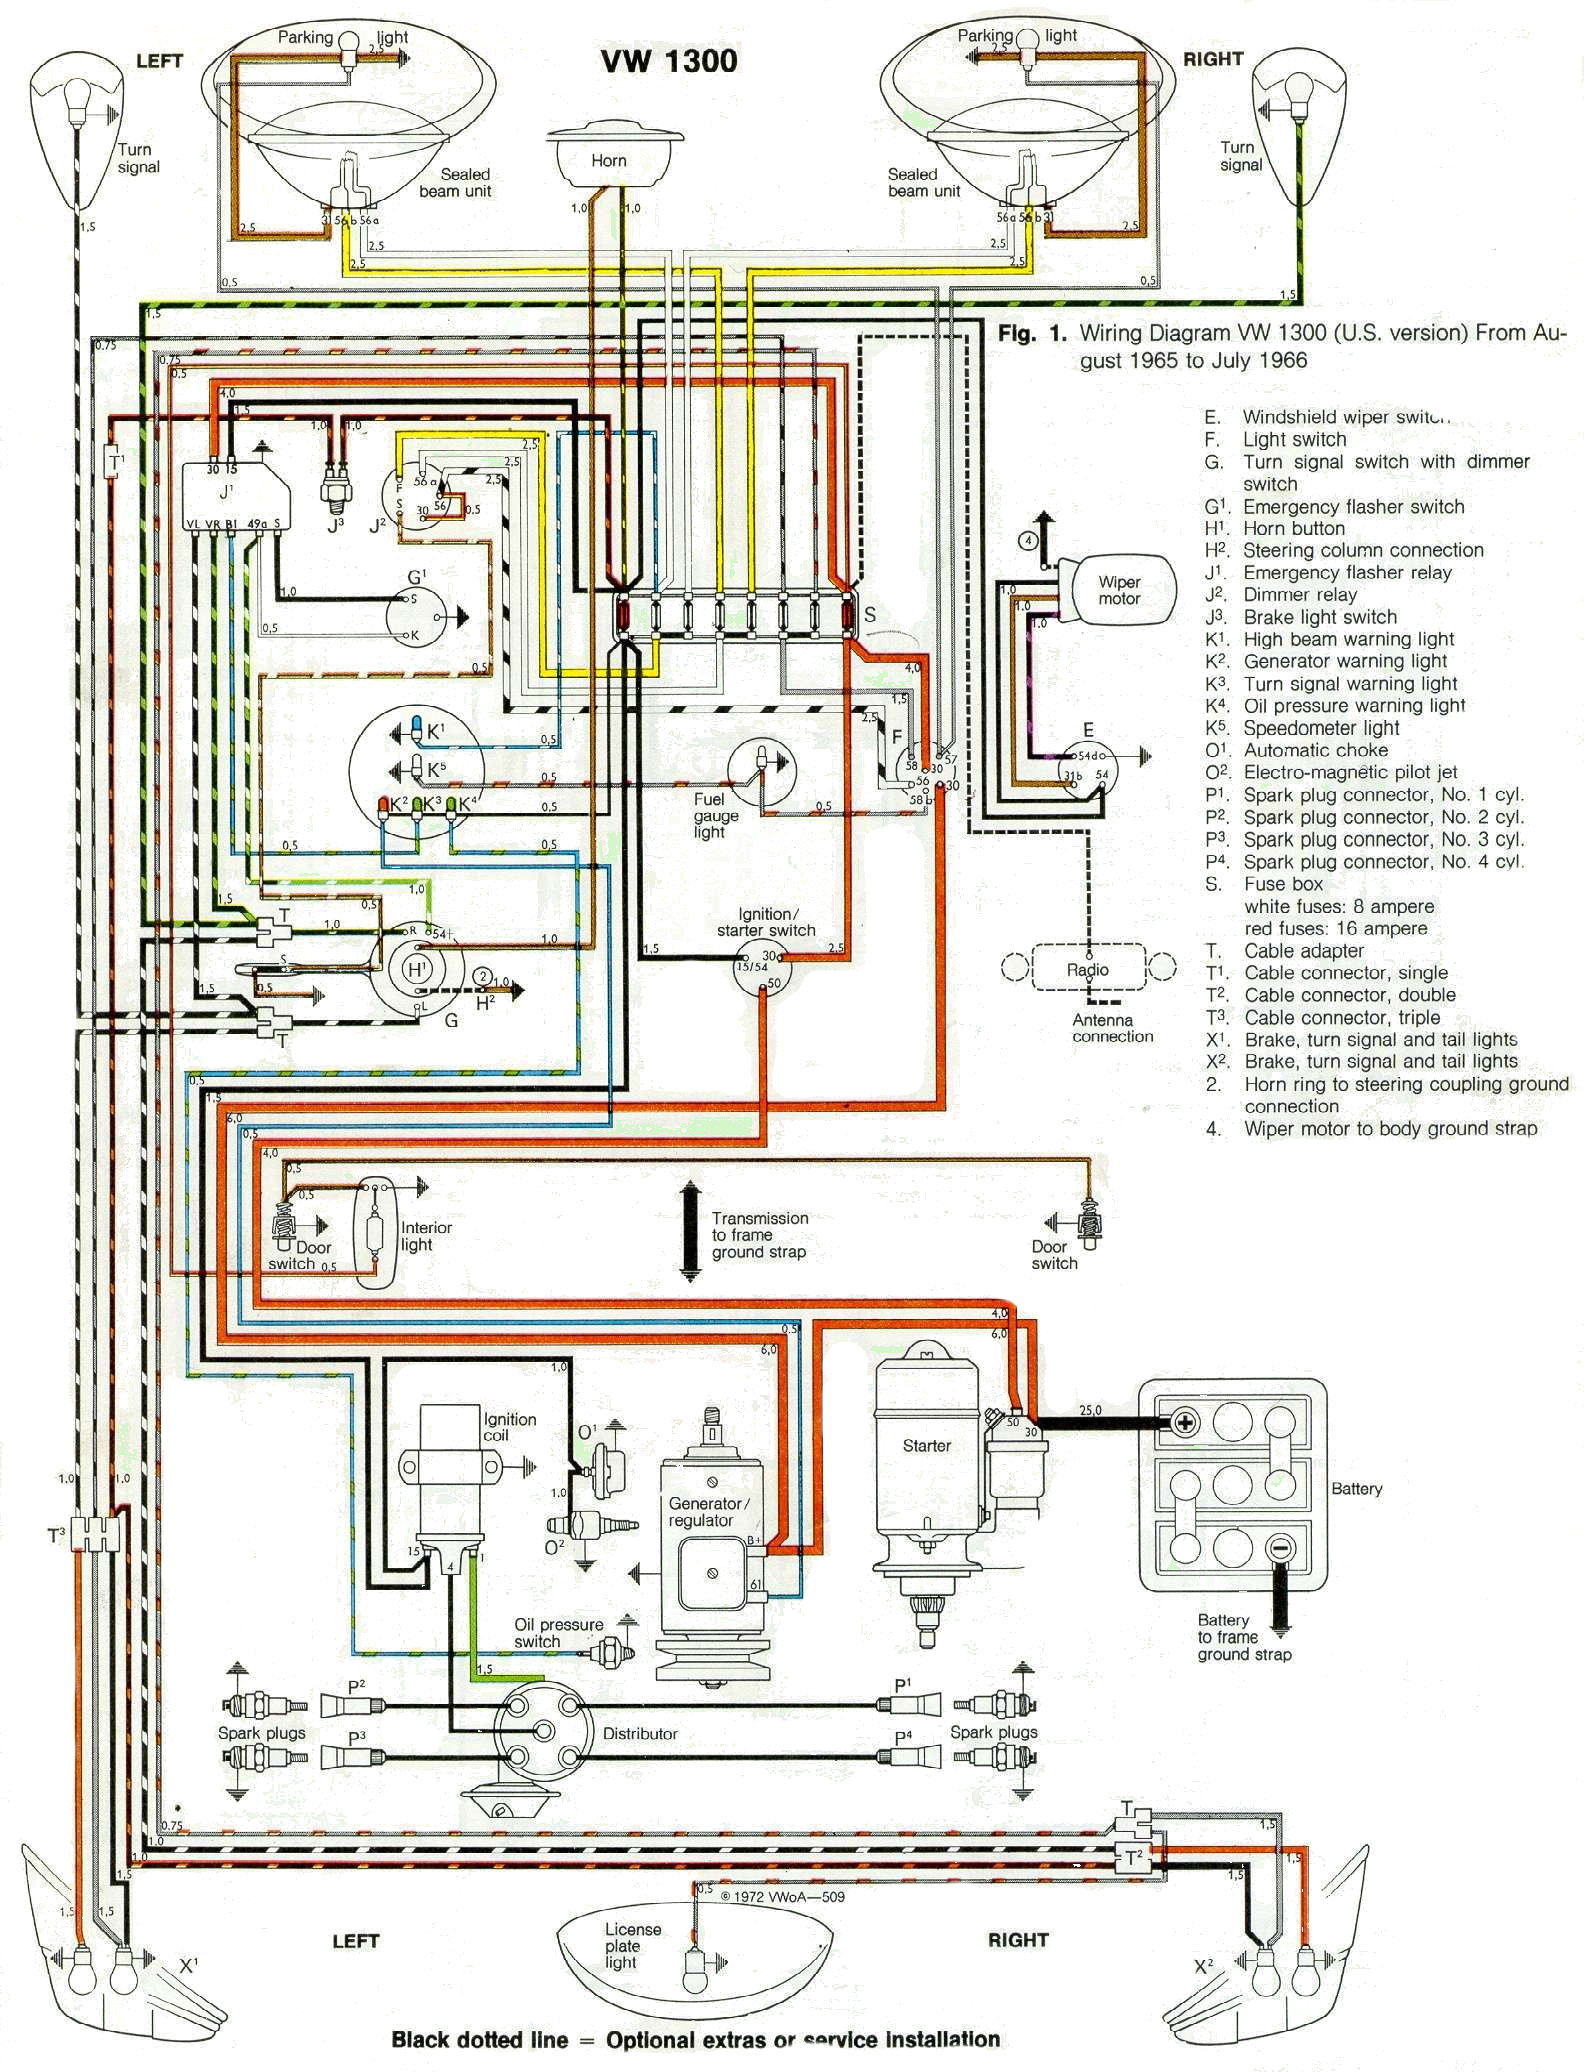 65 vw wiring diagram wiring diagram1965 vw bus wiring diagram free picture 5 18 ms krankenfahrten de \\u20221965 vw buggy wiring diagram free download rax bibliofem nl u2022 rh rax bibliofem